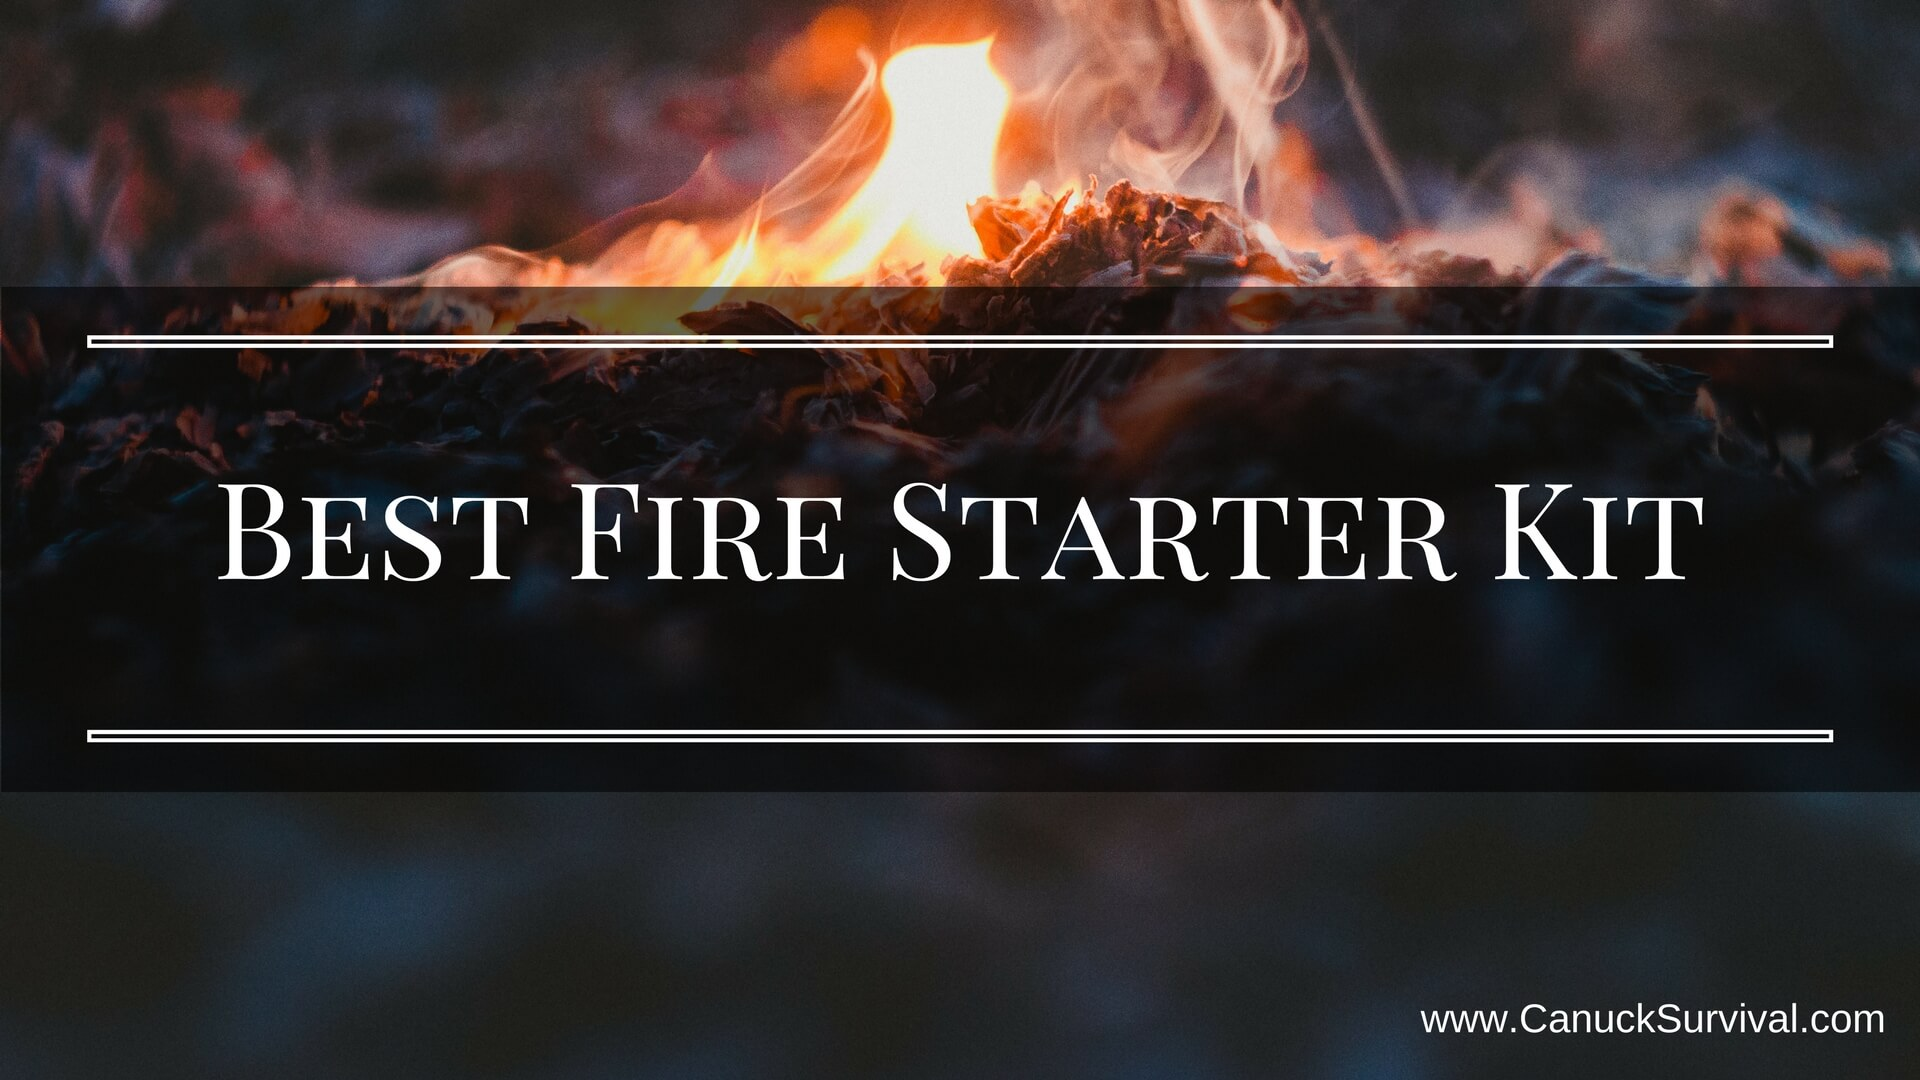 Best Fire Starter Kit